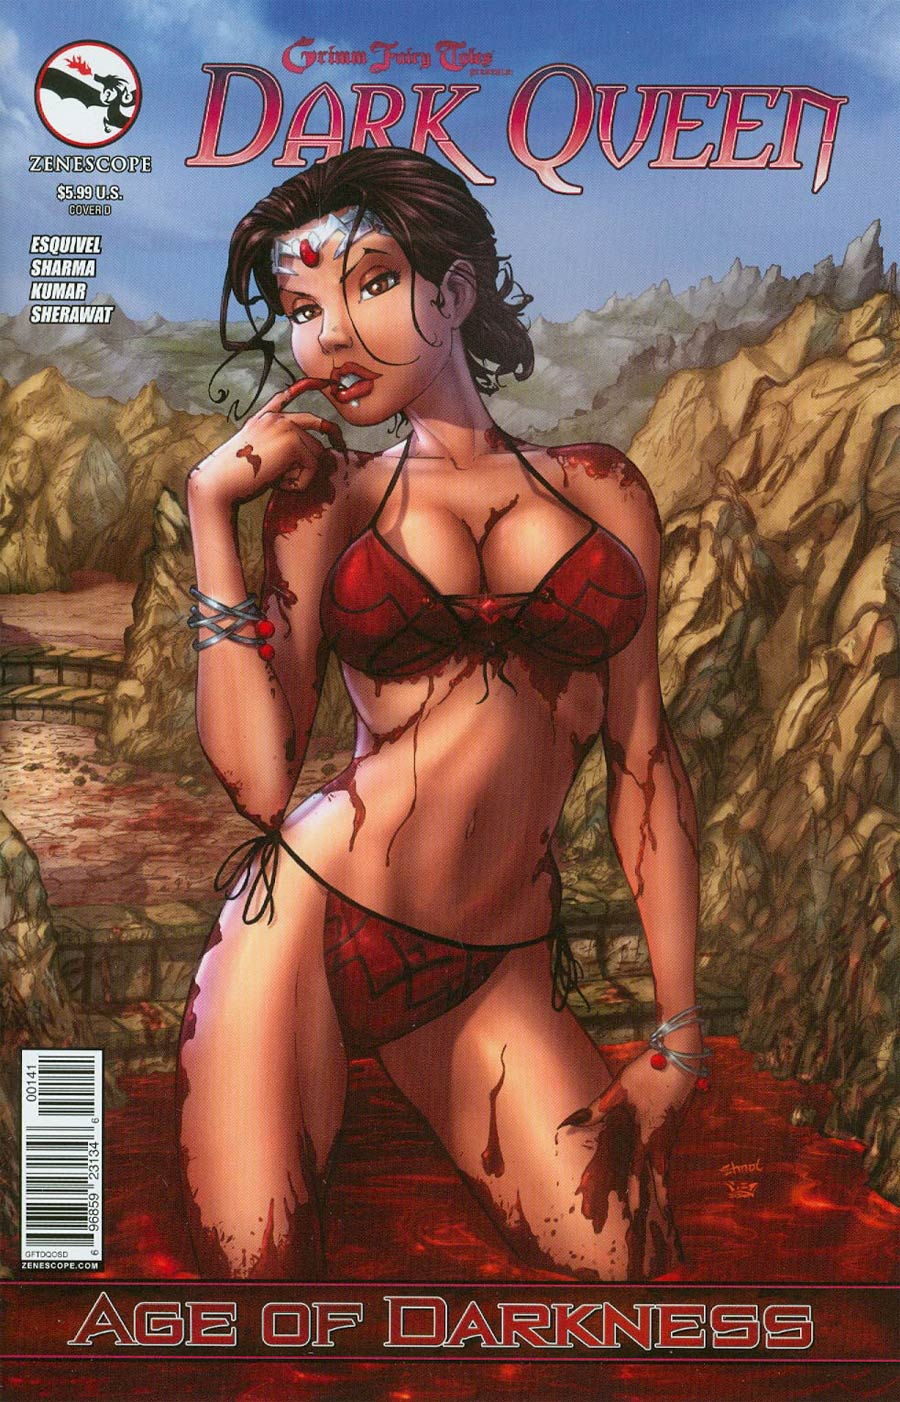 Grimm Fairy Tales Presents Dark Queen Cover D Chris Ehnot Bikini (Age Of Darkness Tie-In)